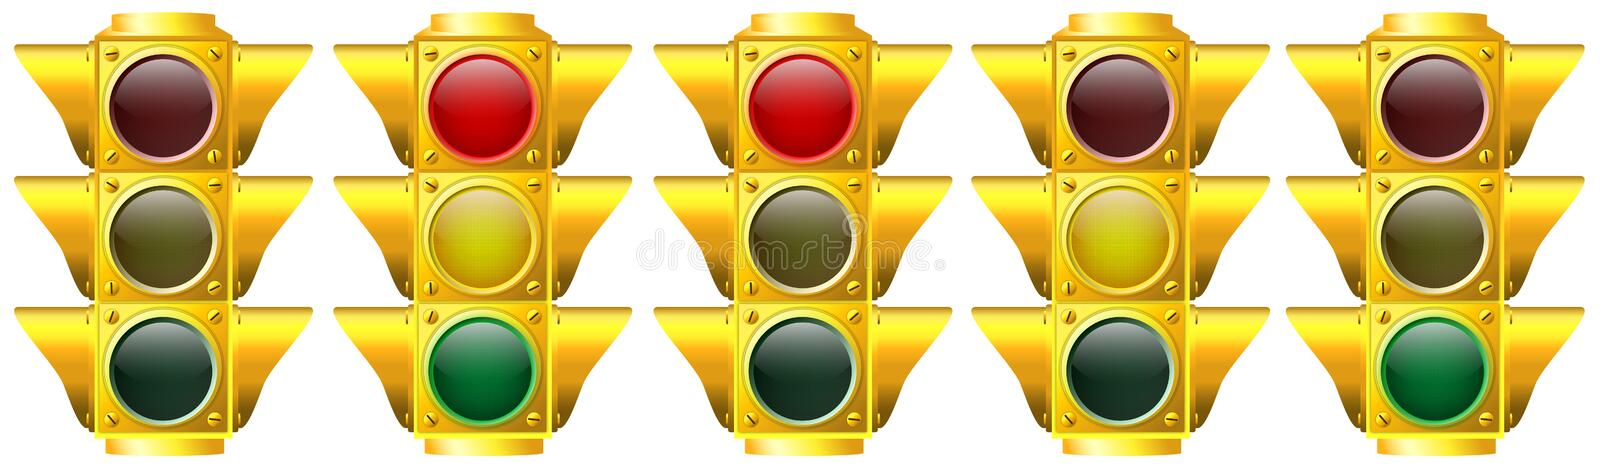 Traffic Lights stock illustration